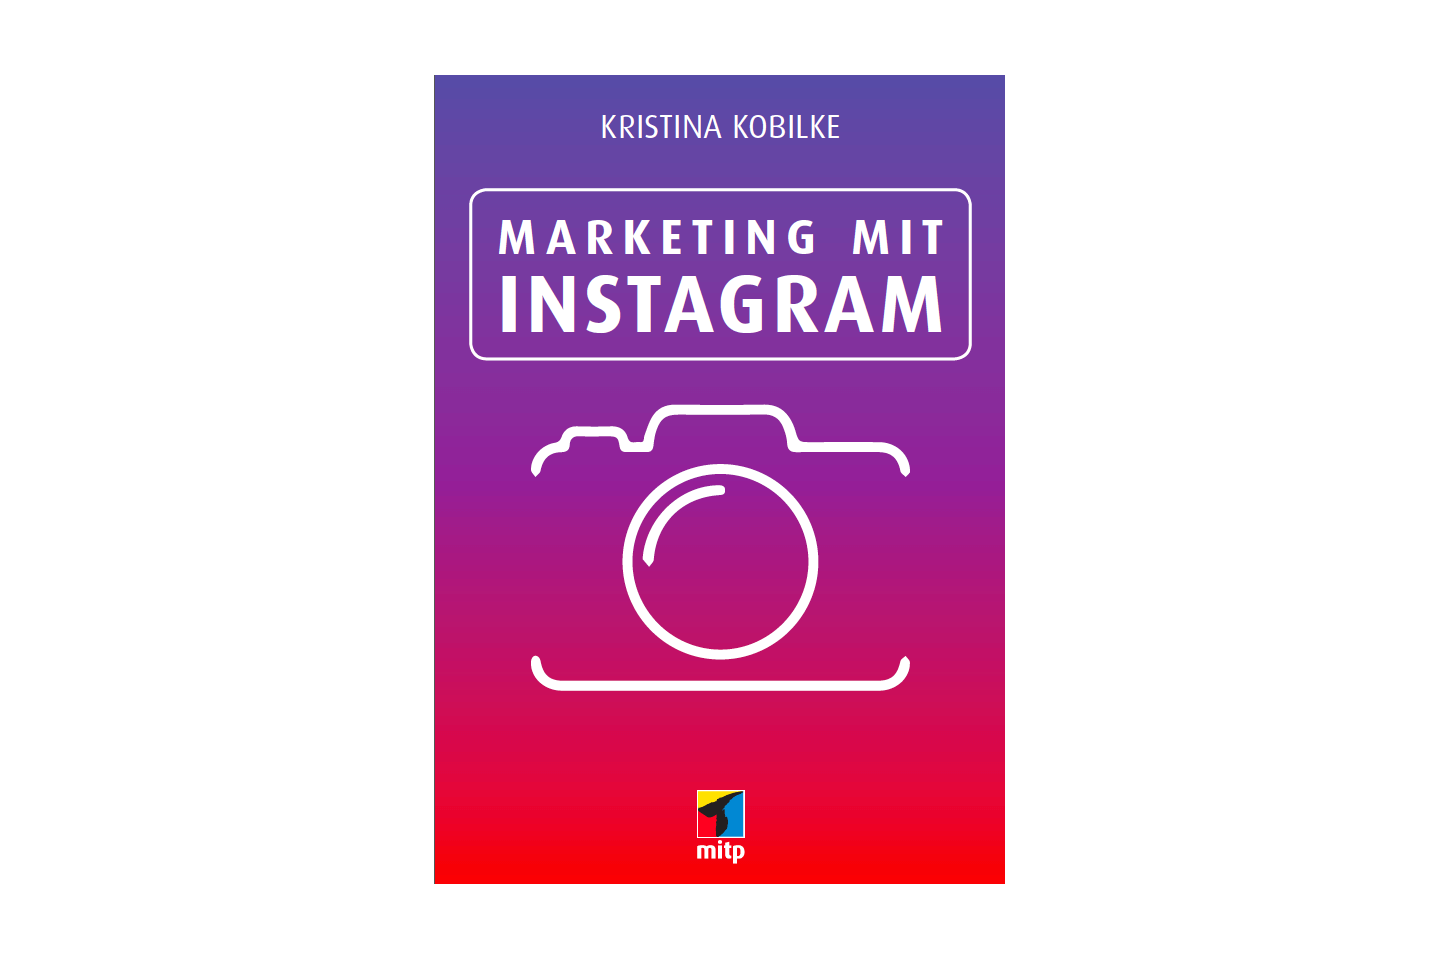 Marketing mit Instagram Buch von Kristina Kobilke